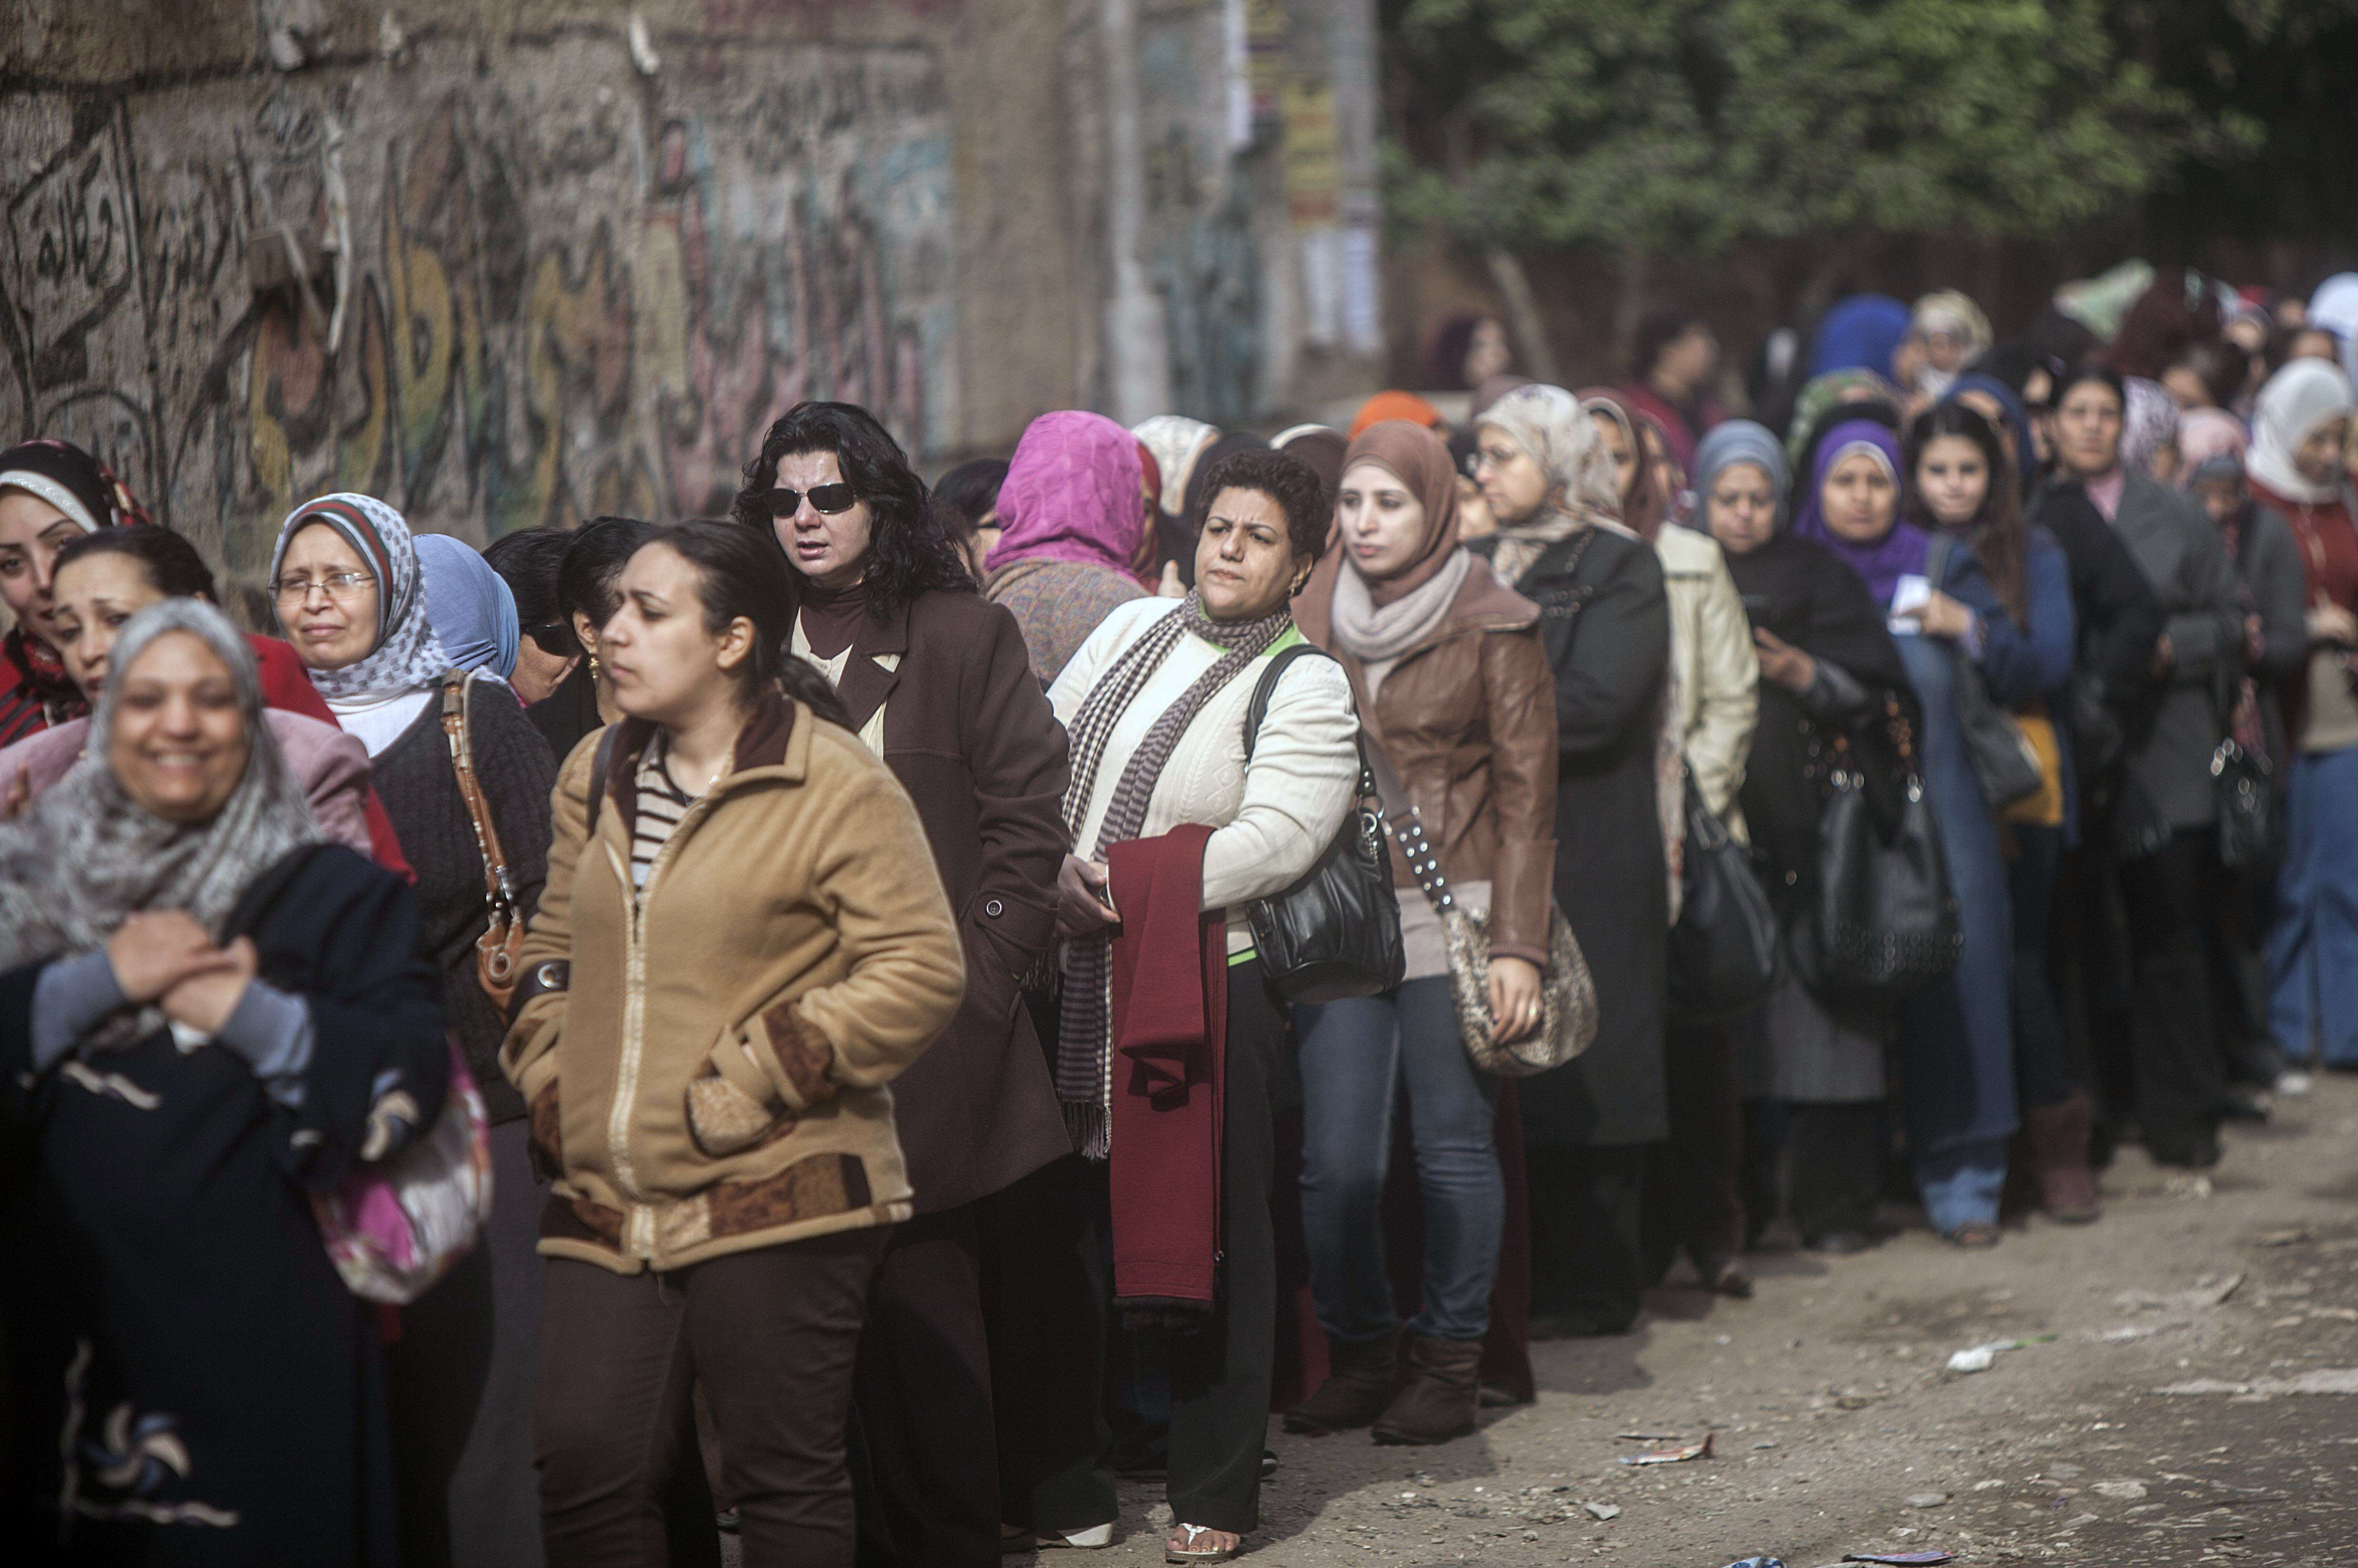 Egyptian women queue up to cast their vote on a new constitution in Al-Haram in the southern Cairo Giza district on January 14, 2014. The military-installed government implored voters to turn out en masse to ratify the constitution, with the country's lingering polarisation underscored by the explosion of a small bomb in Cairo that caused no injuries.  (AFP PHOTO / MAHMOUD KHALED)